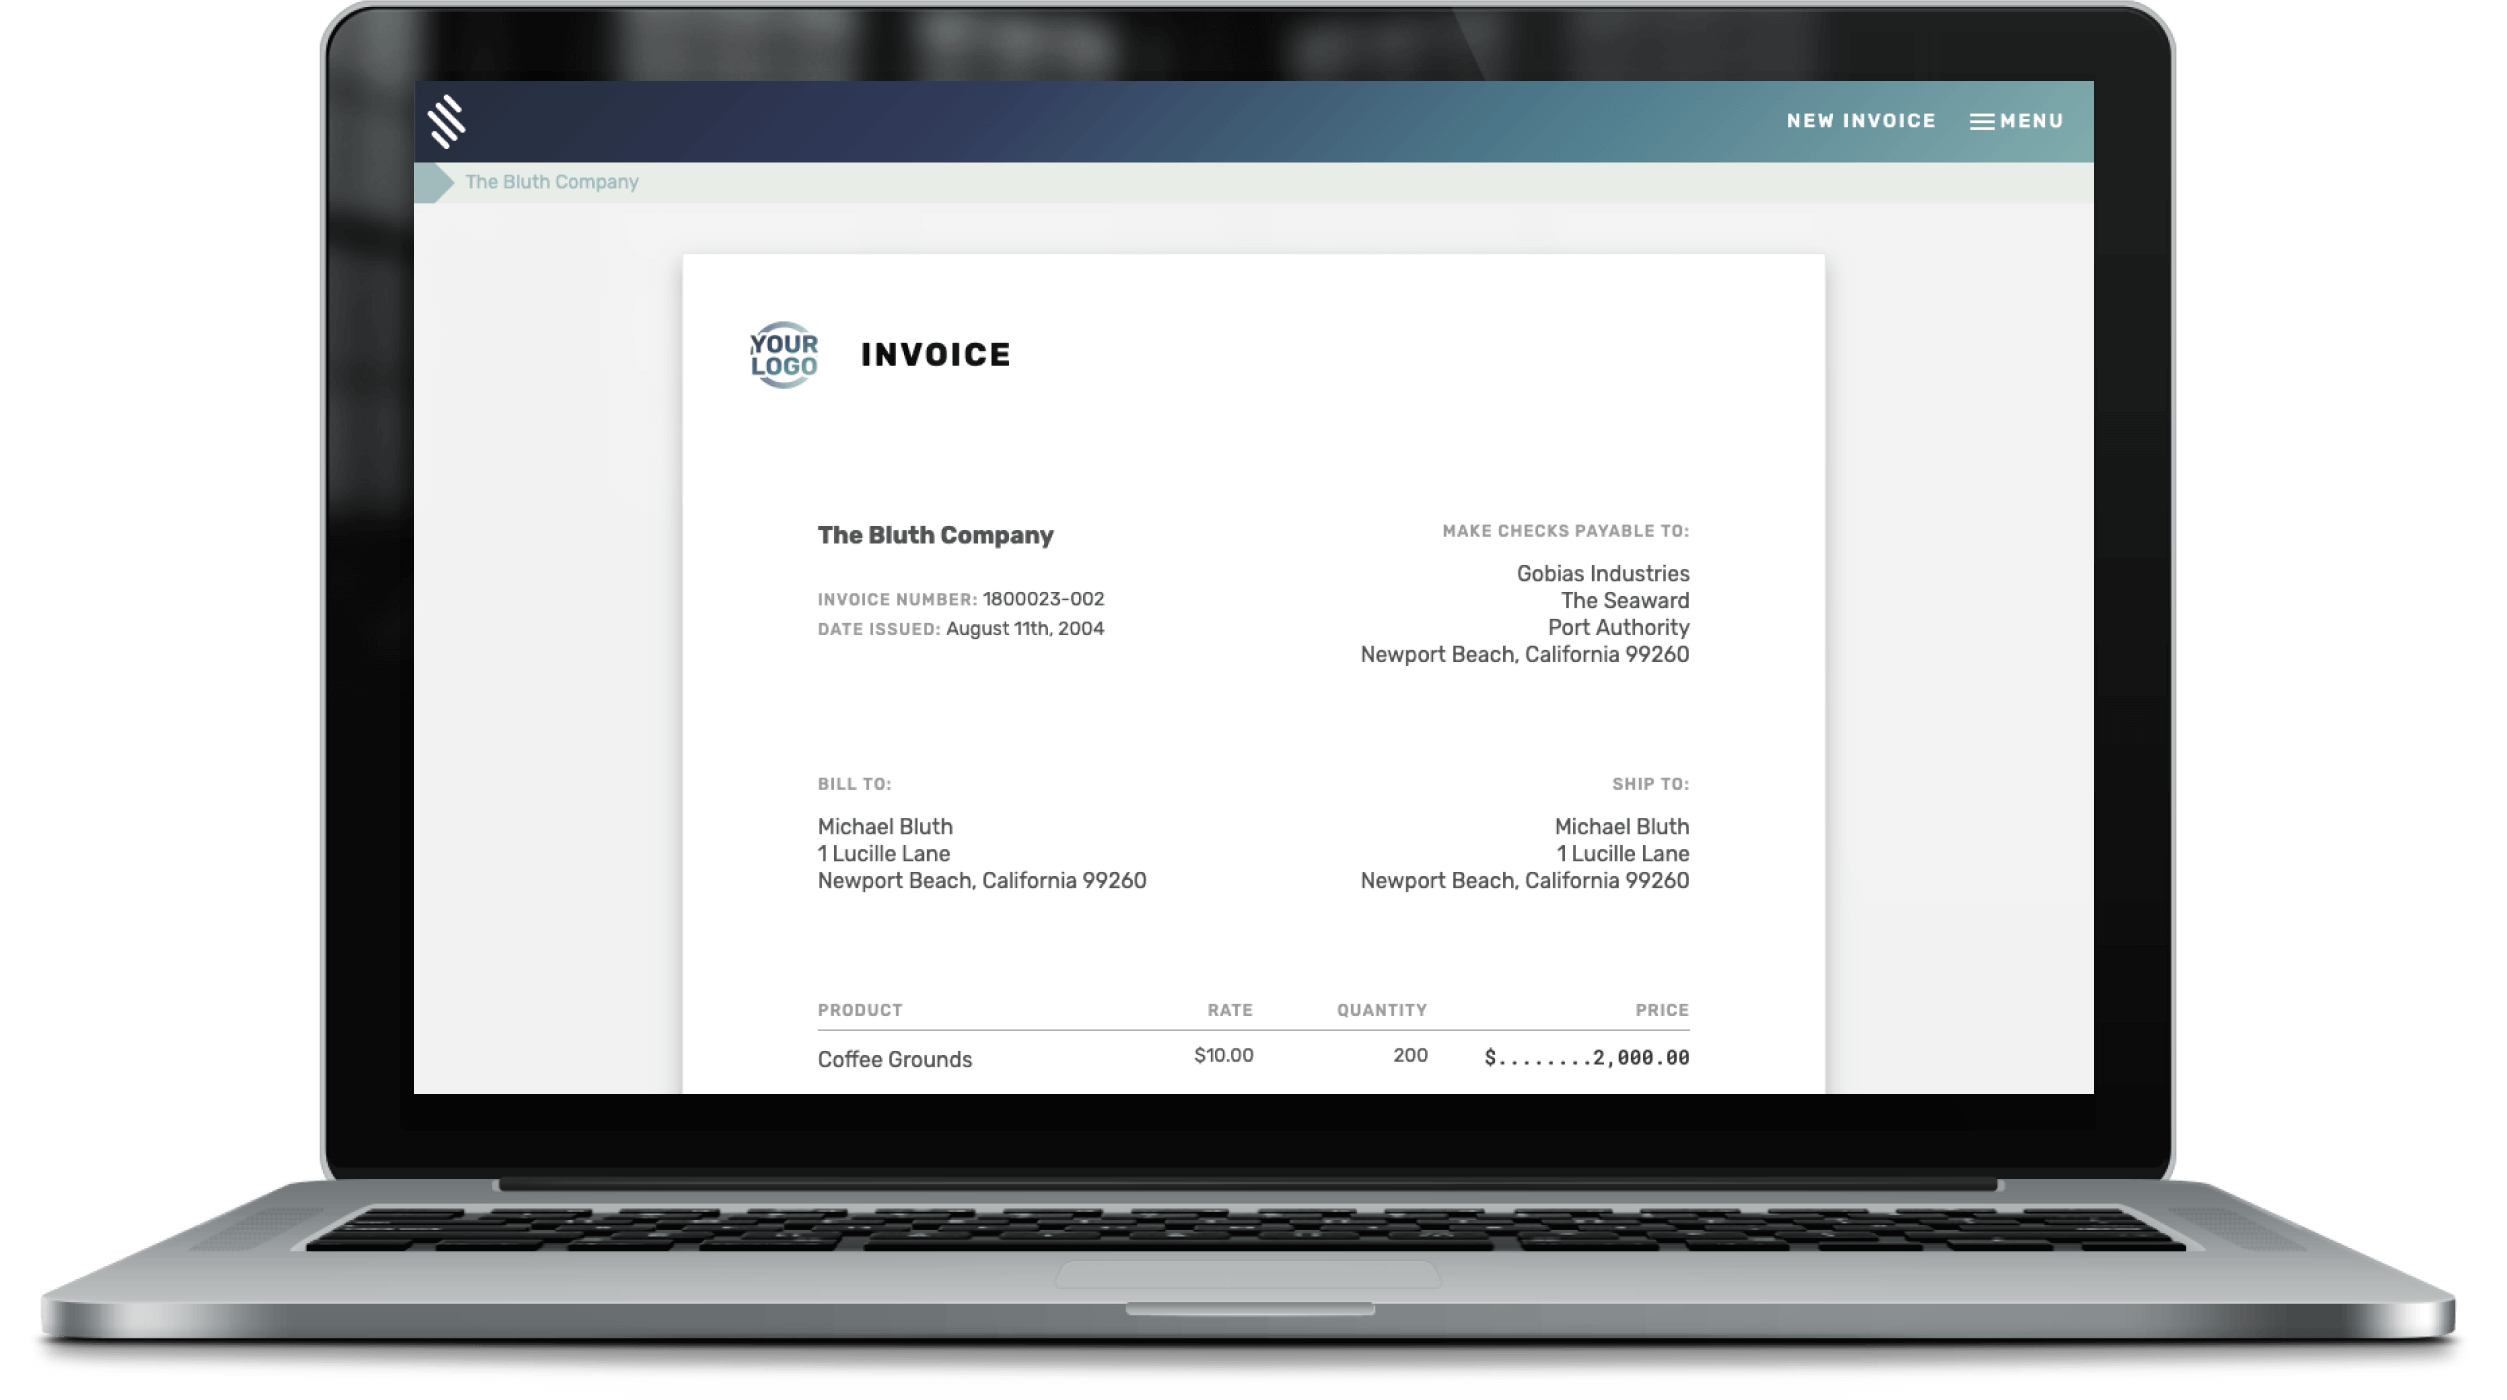 Computer printing an invoice out of its screen